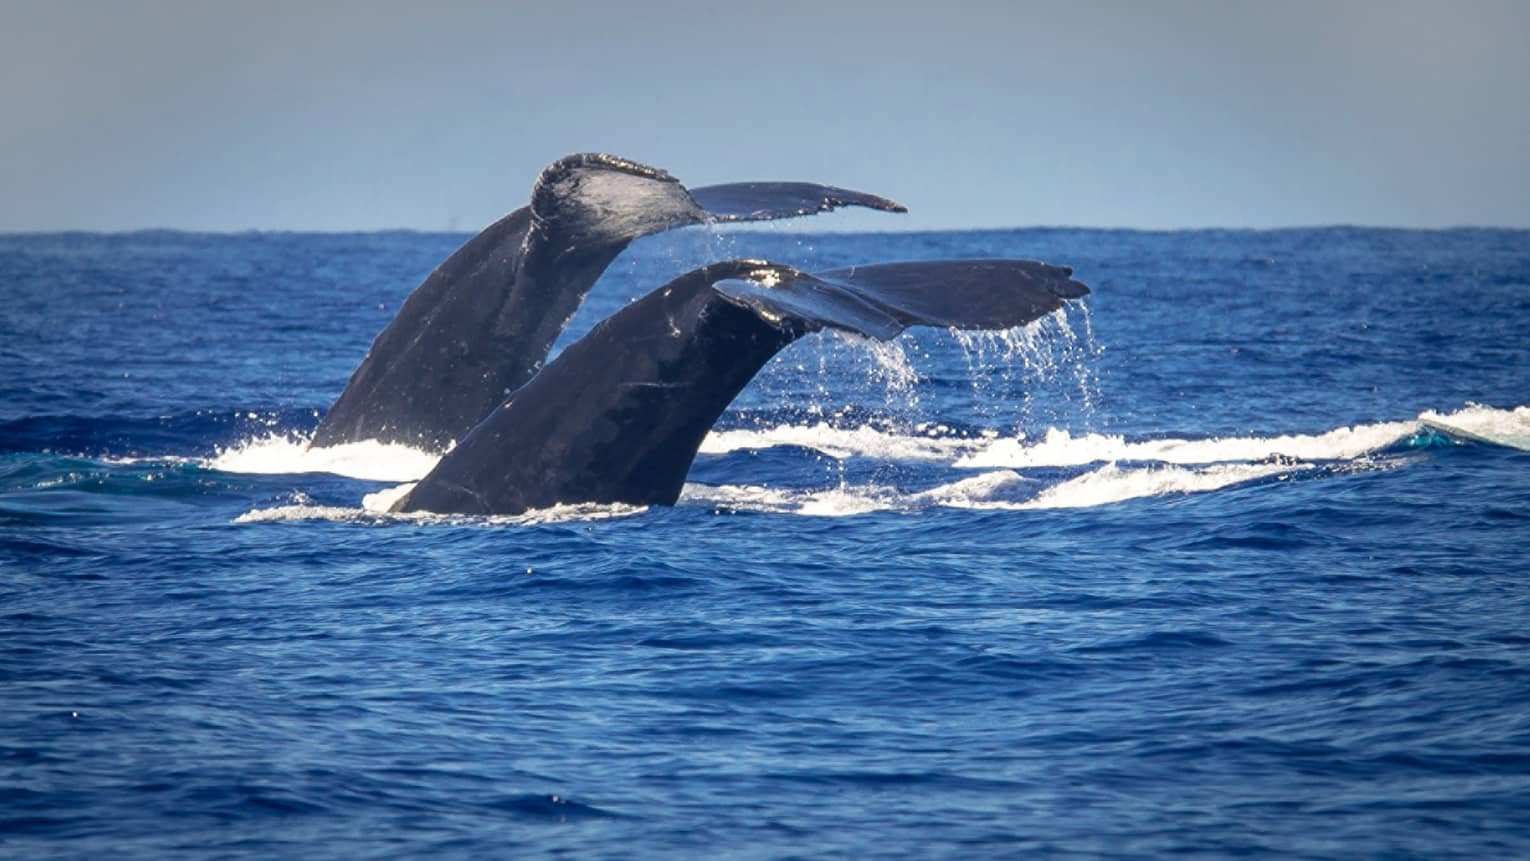 The tail of two North Pacific Humpback whales rise above the blue ocean